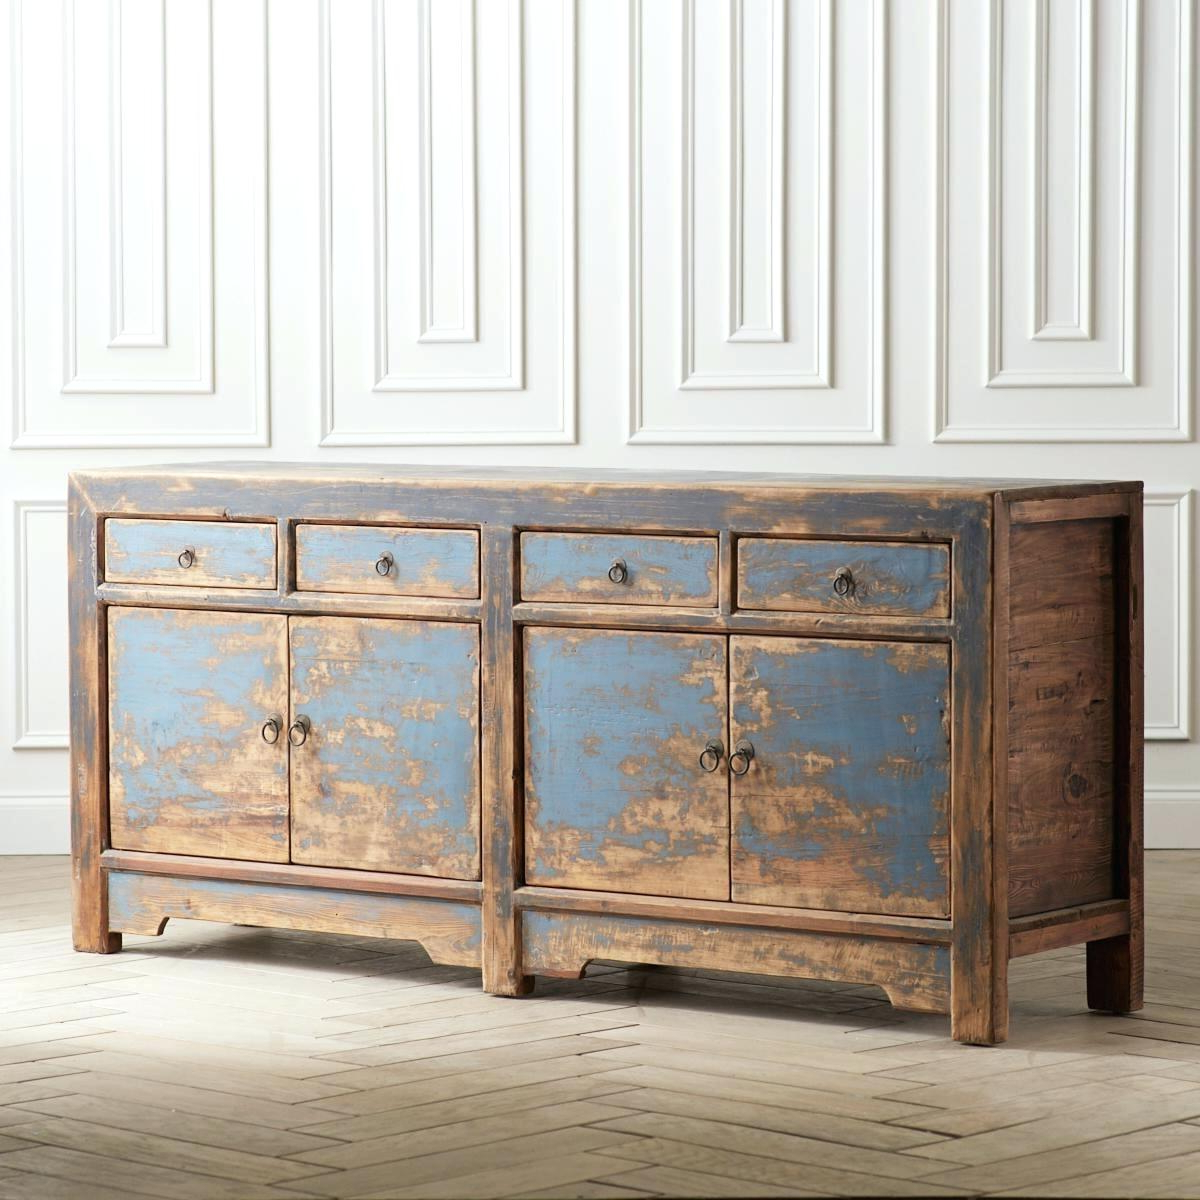 Unique Sideboards – Aftermidnight.co With Latest Lola Sideboards (Gallery 13 of 20)